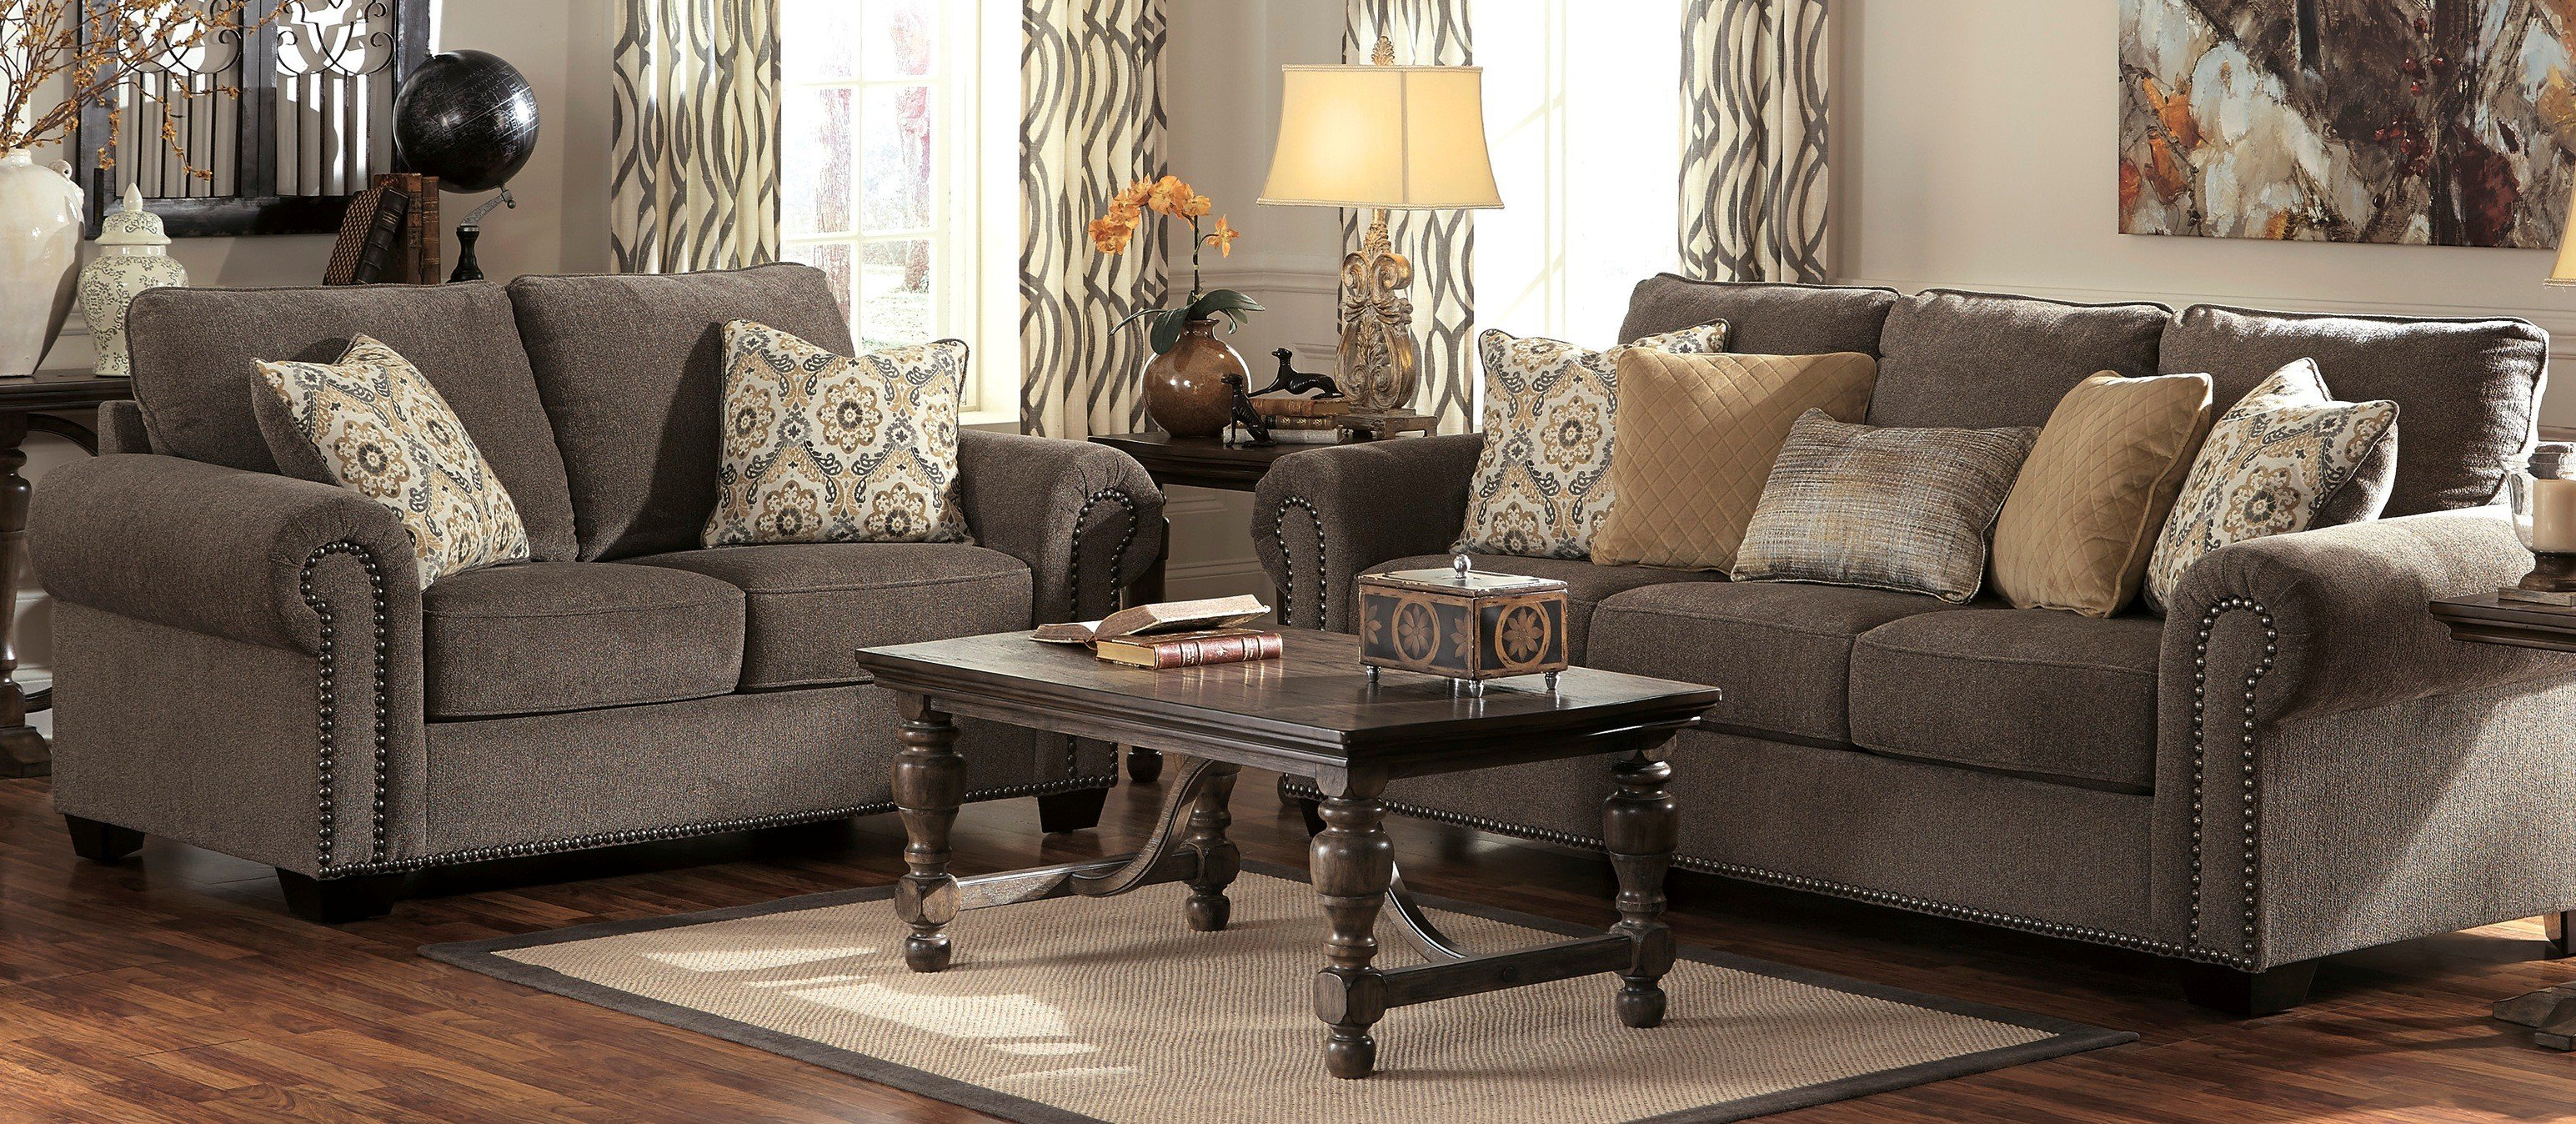 Living Room Sets Ashley living rooms | anderson's warehouse furniture | pittsburg, herrin, il